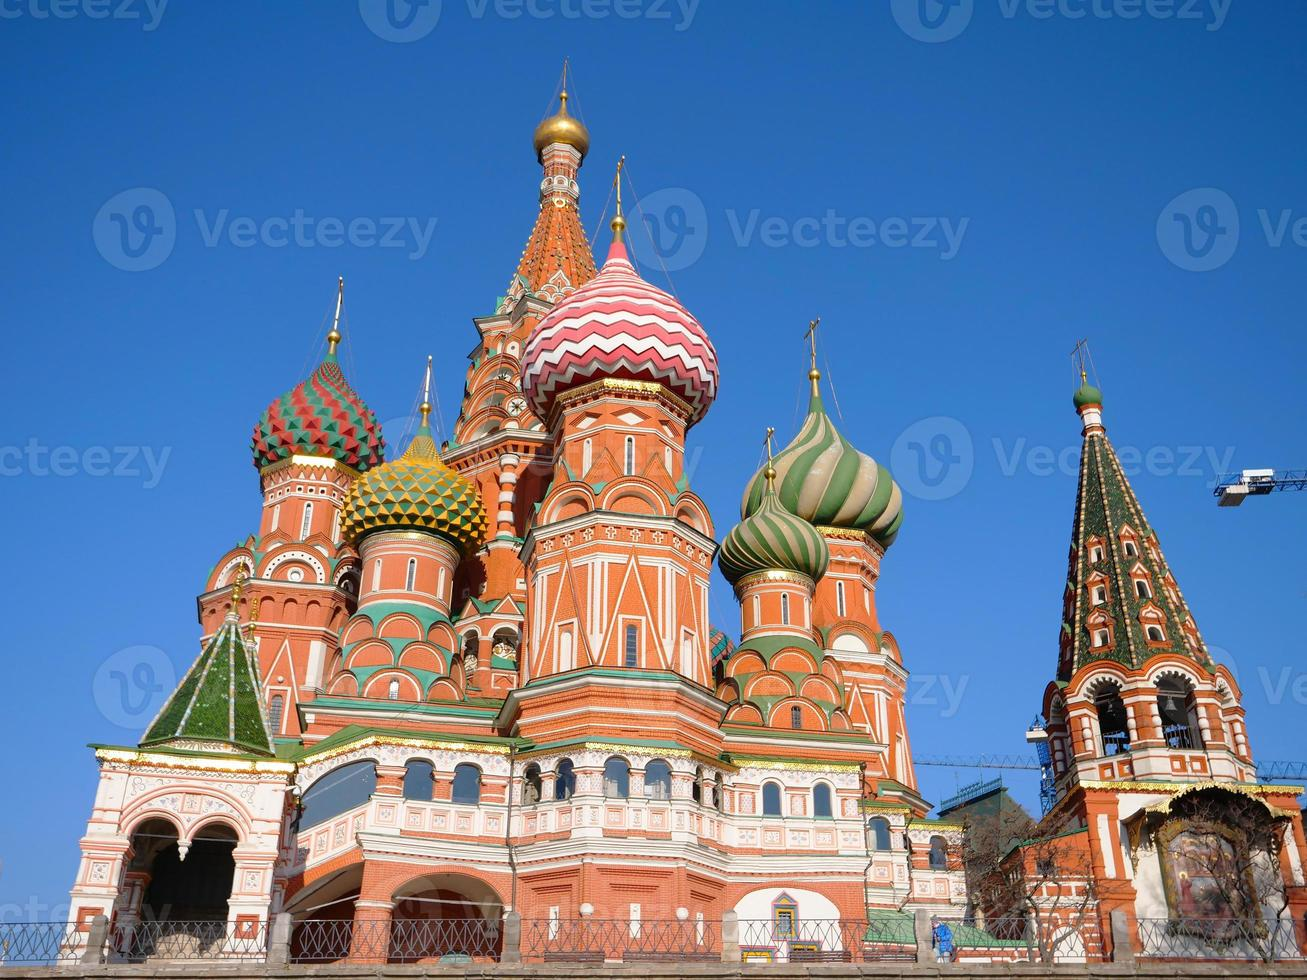 St. Basil's Cathedral in Red Square Moscow Kremlin, Russia photo